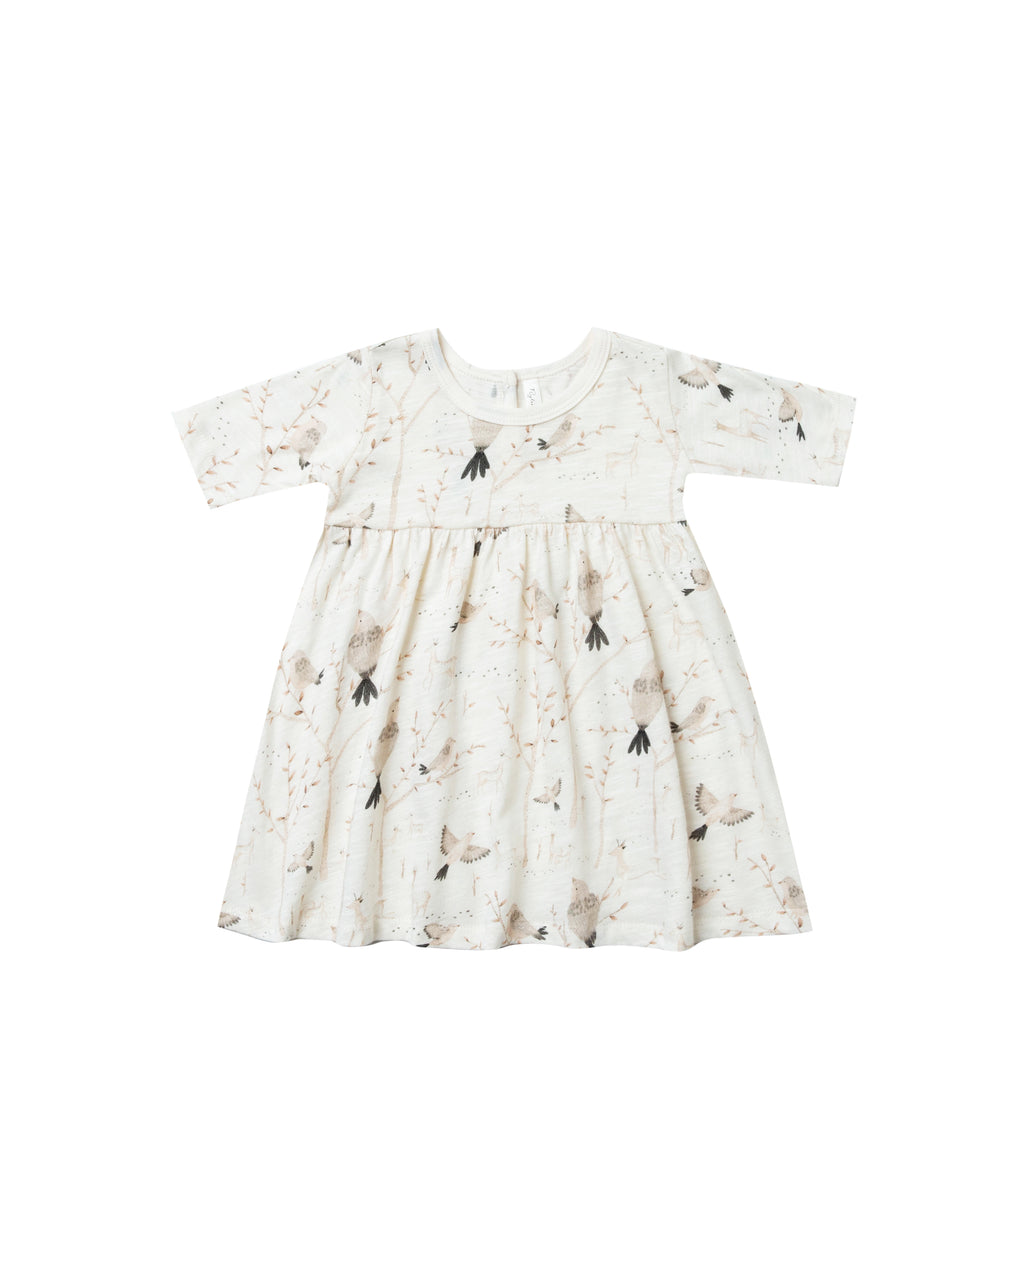 Rylee & Cru Winter Birds Finn Dress Ivory